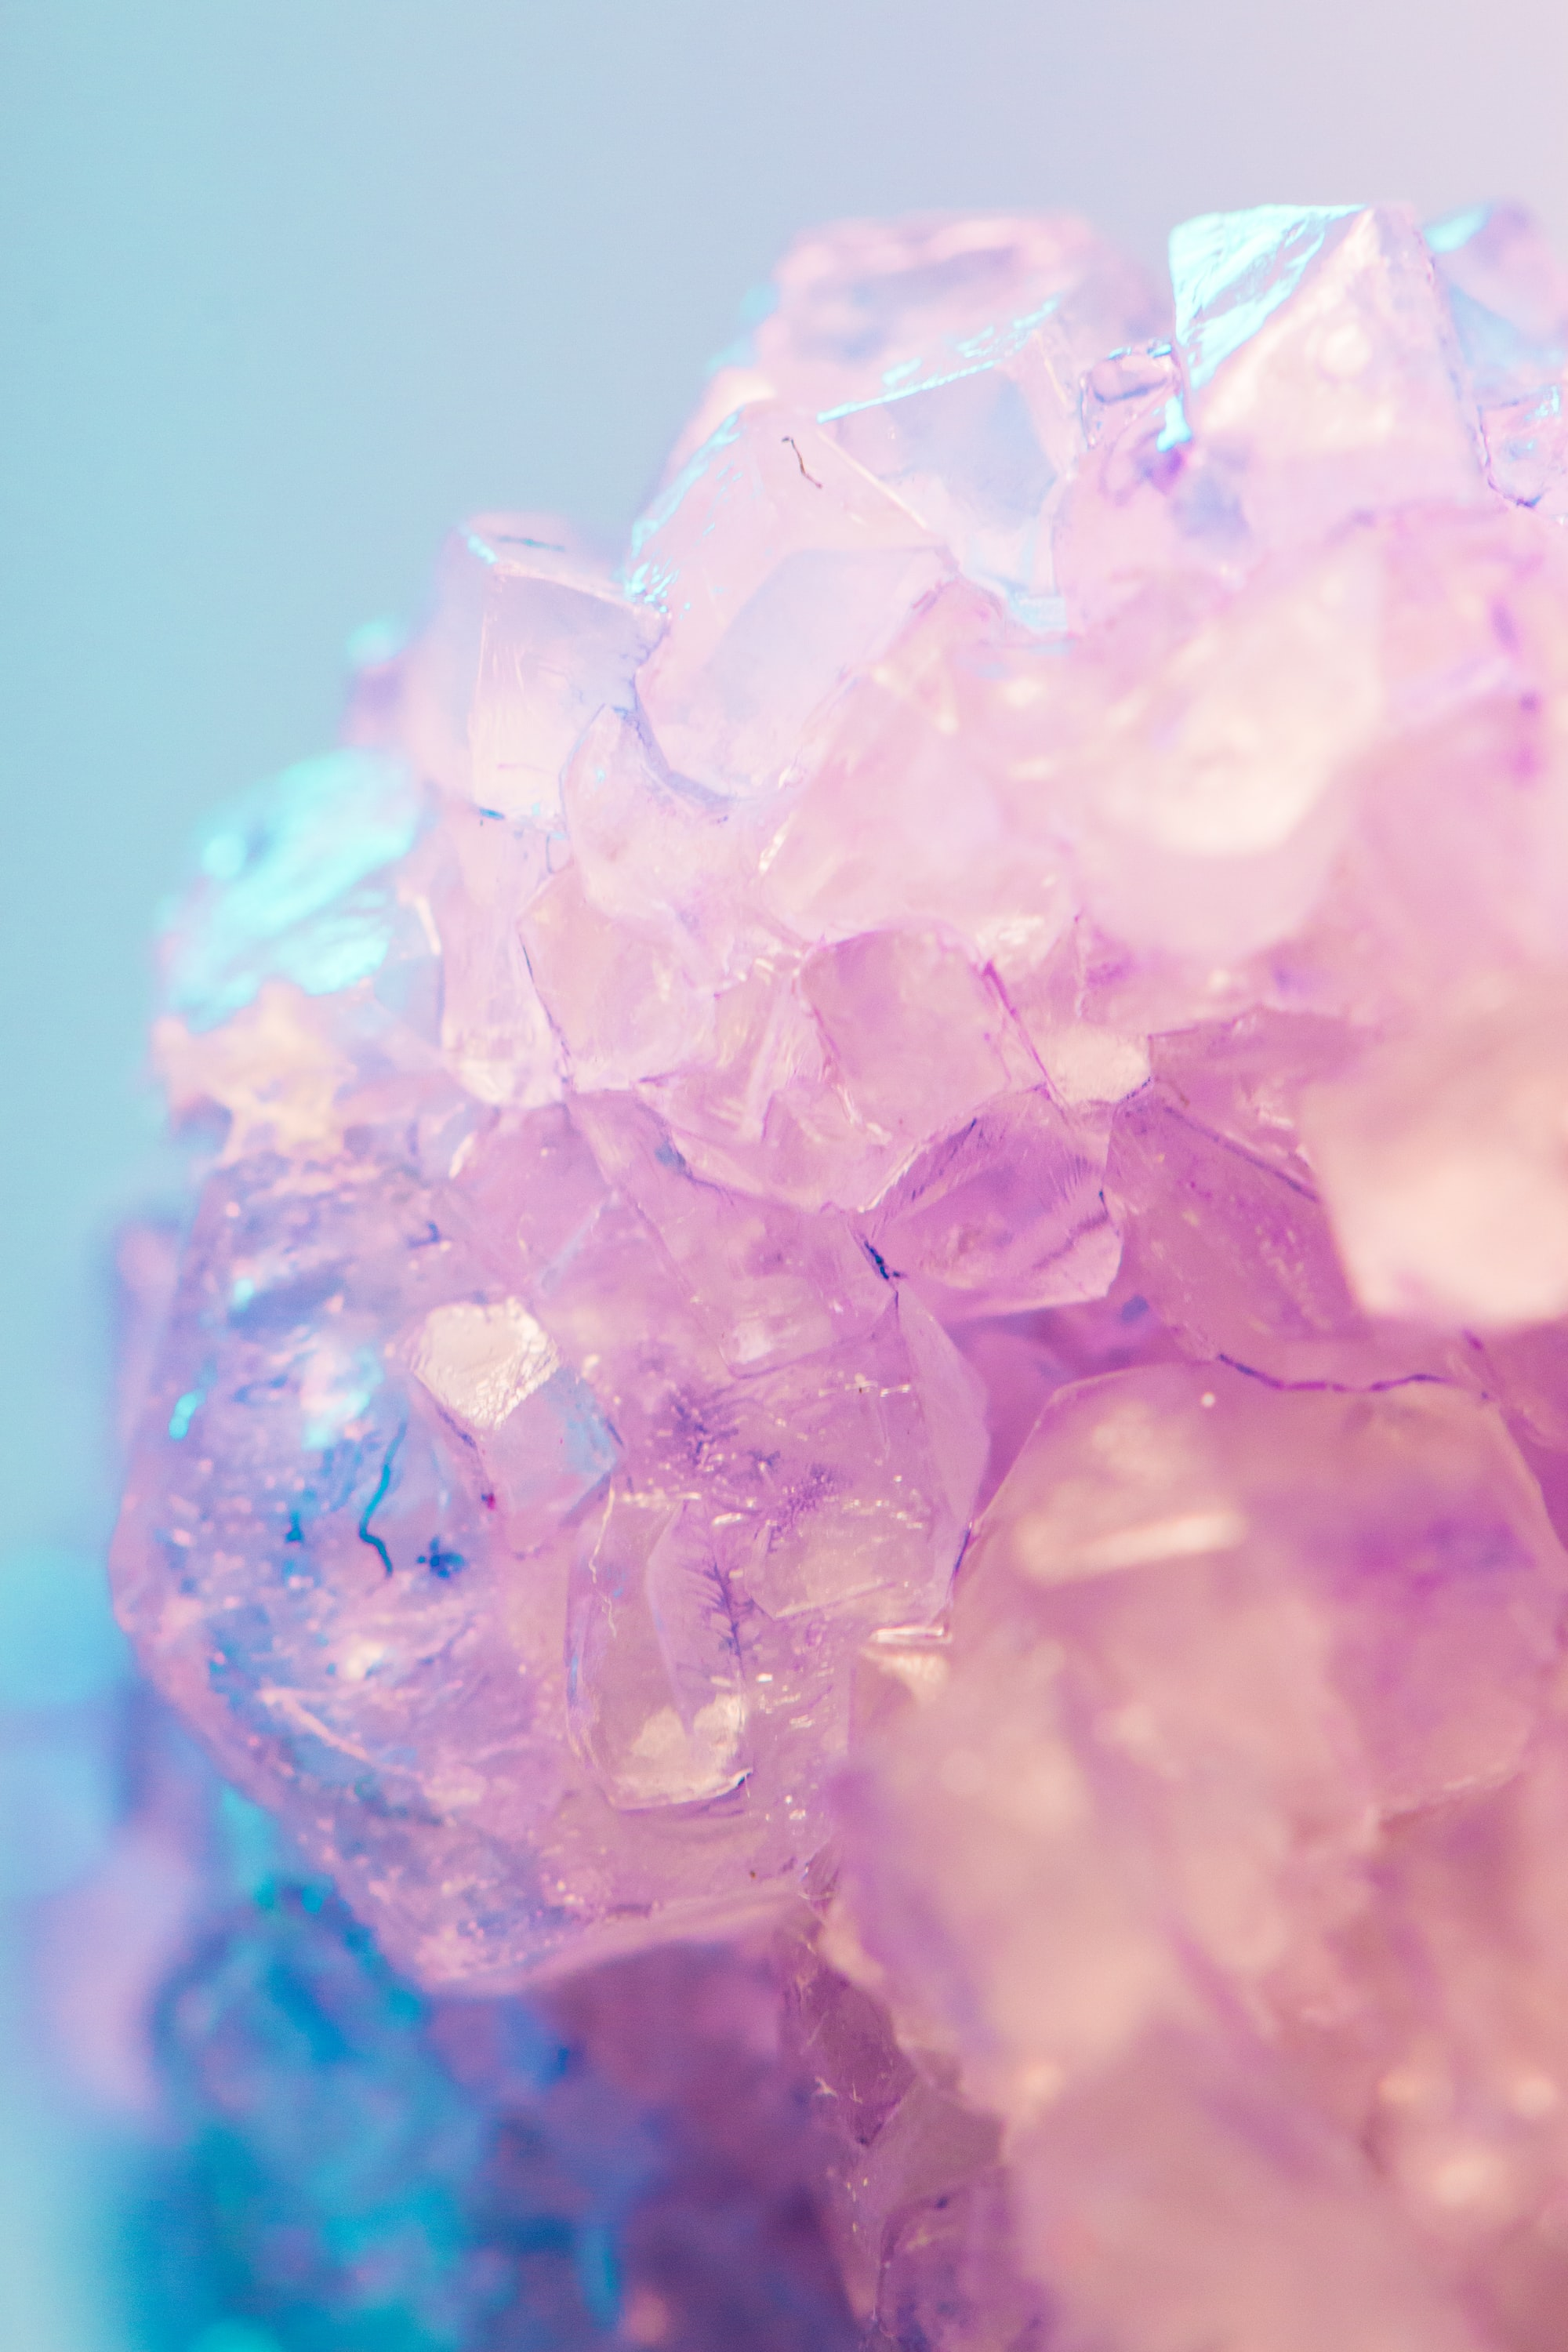 Rock On: How Adding Crystals and Gems Is a Simple Way to Ease Stress